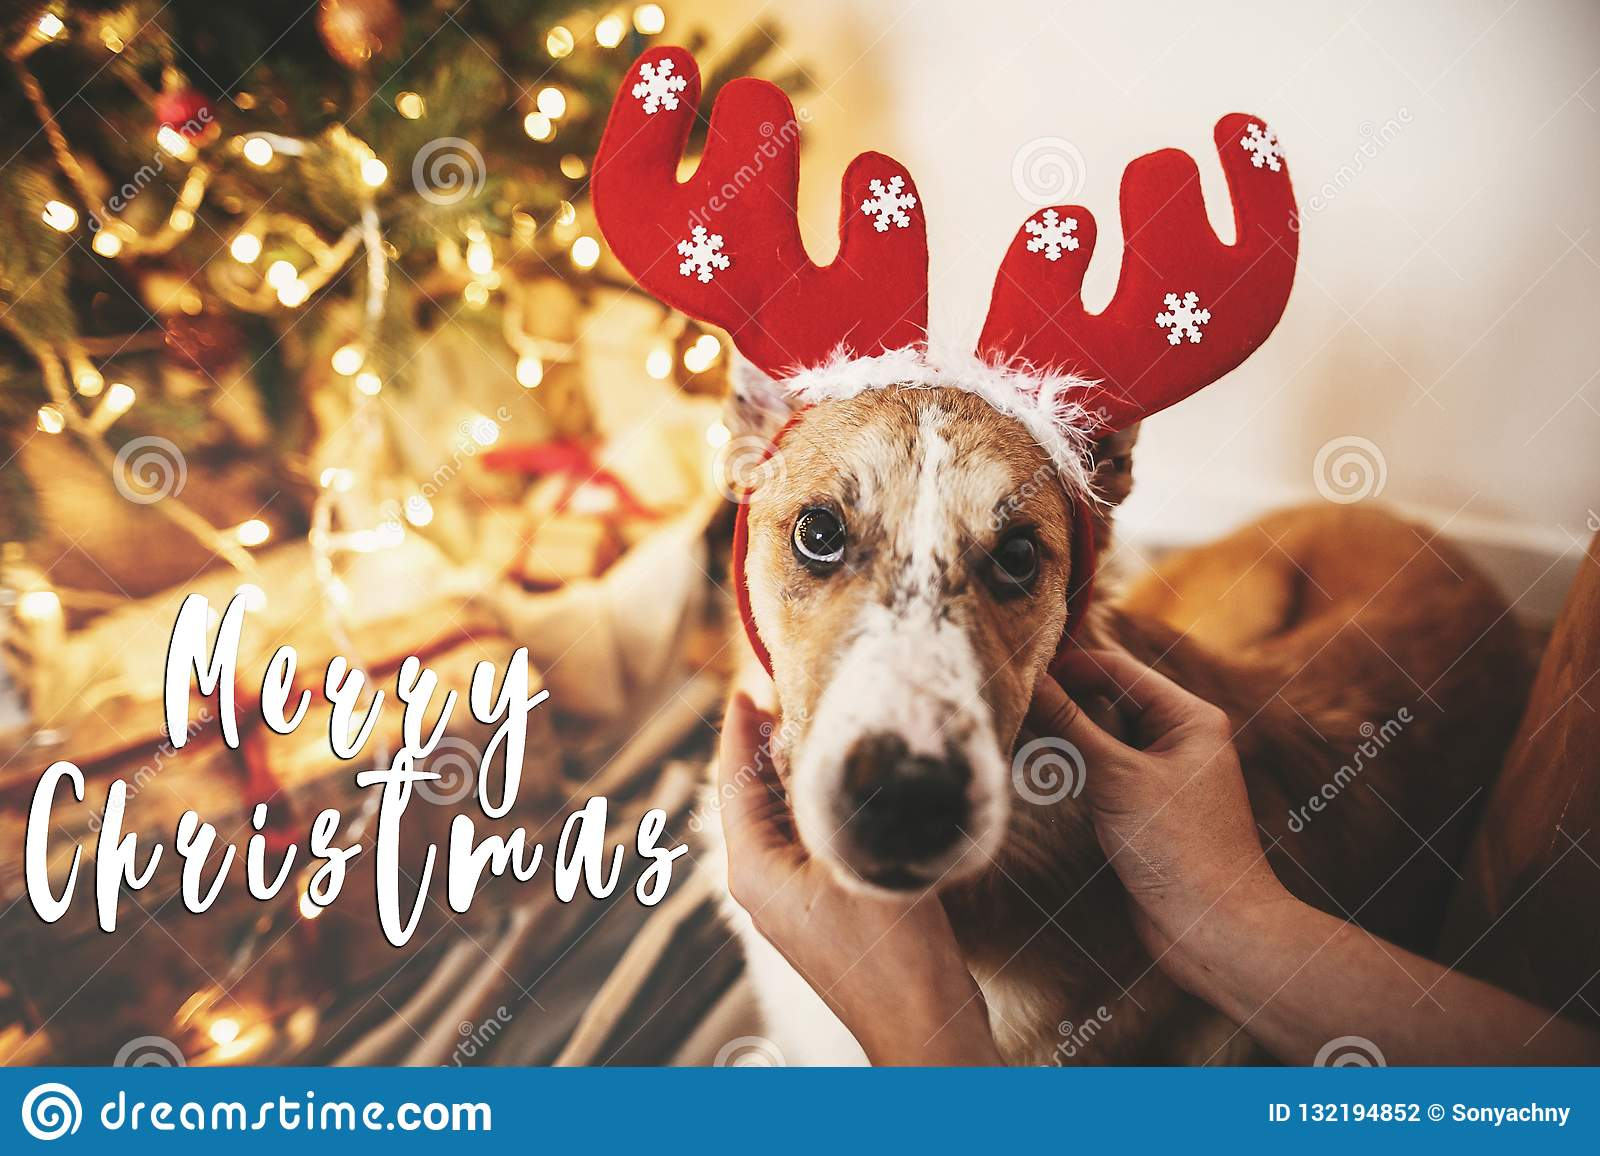 Merry Christmas text on dog with reindeer antlers sitting at gol